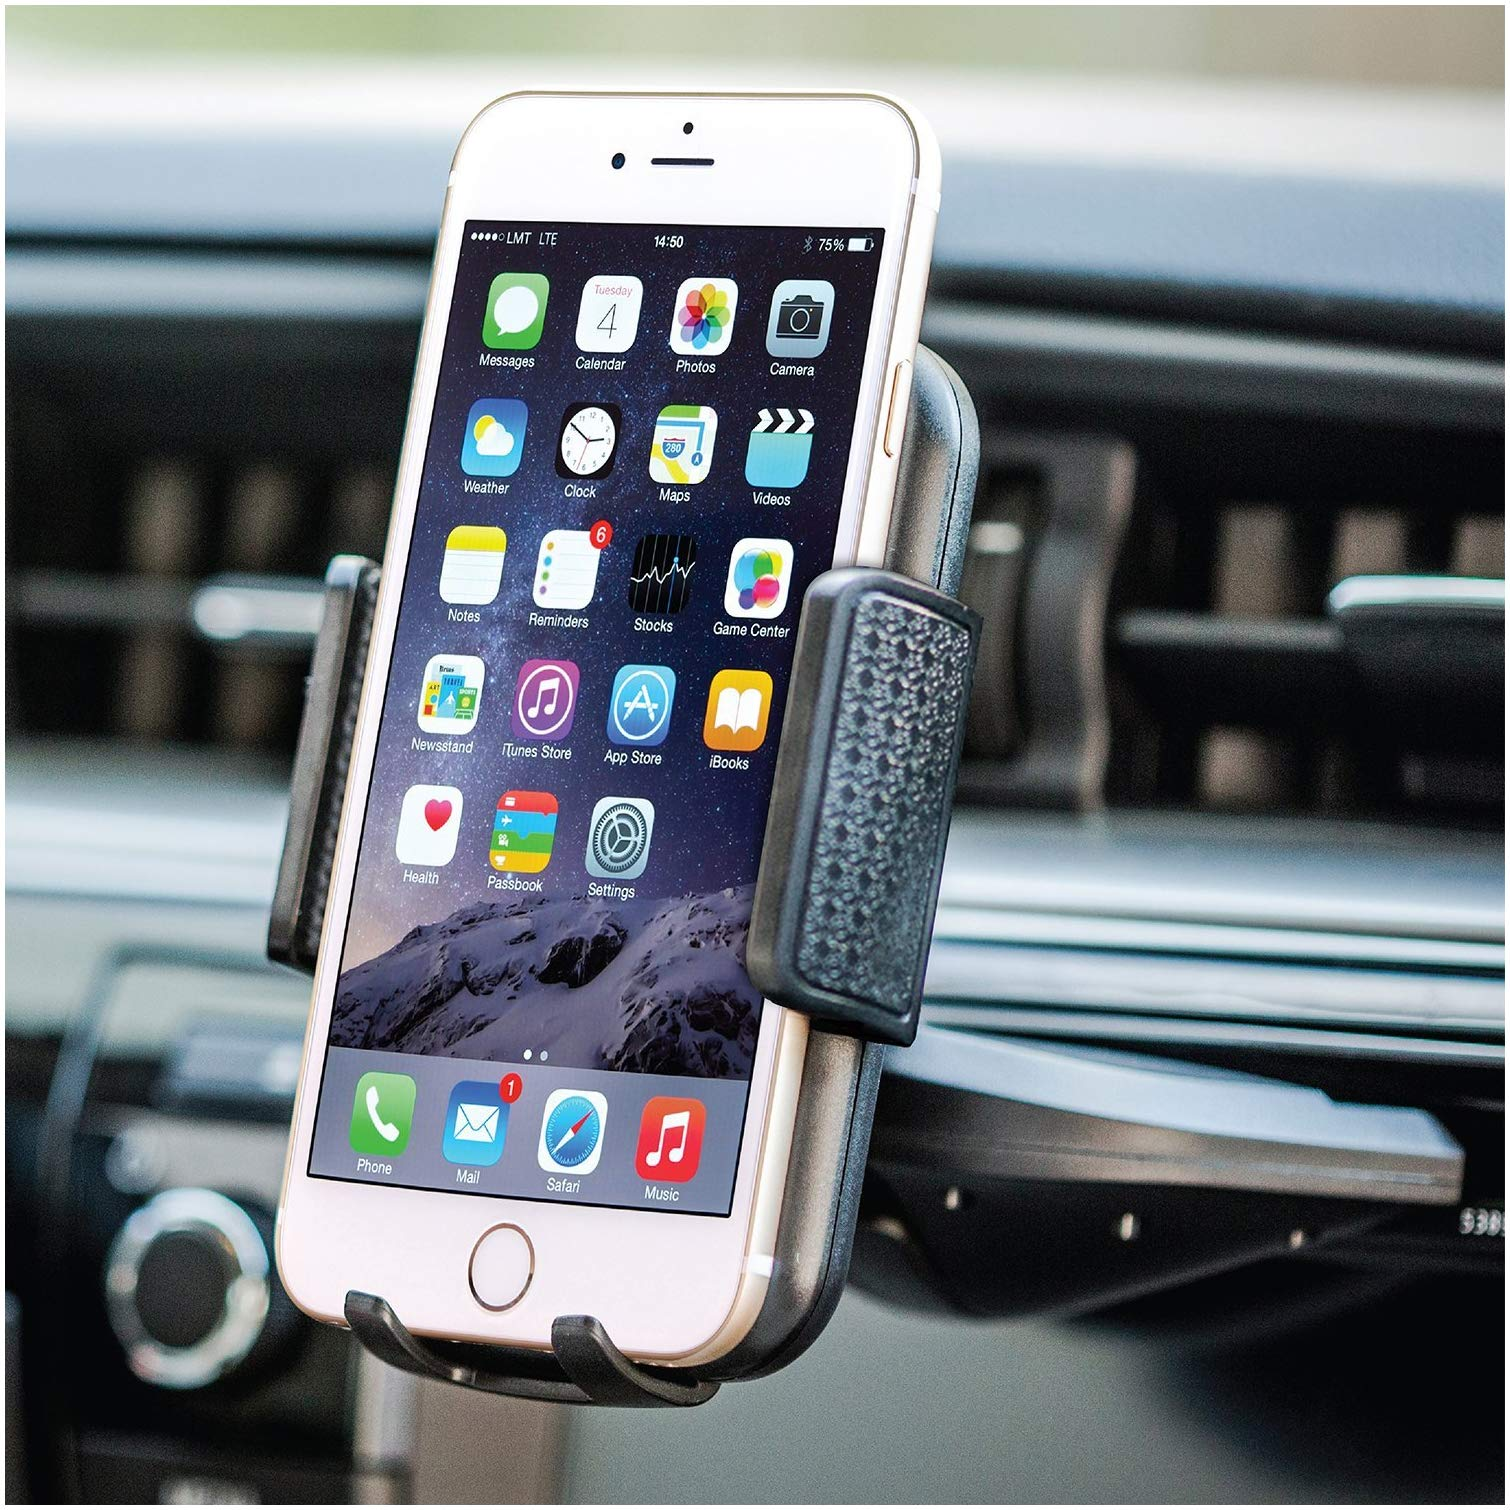 Bestrix Universal CD Slot Phone Holder for Car Ideal for iPhone X, 8, 7, 6, 6S Plus. 5S, 5C, 5, Samsung Galaxy S5, S6, S7, S8, Edge/Plus Note 4,5,8, LG G4, G5, G6, V30 All Smartphones up to 6'' by Bestrix